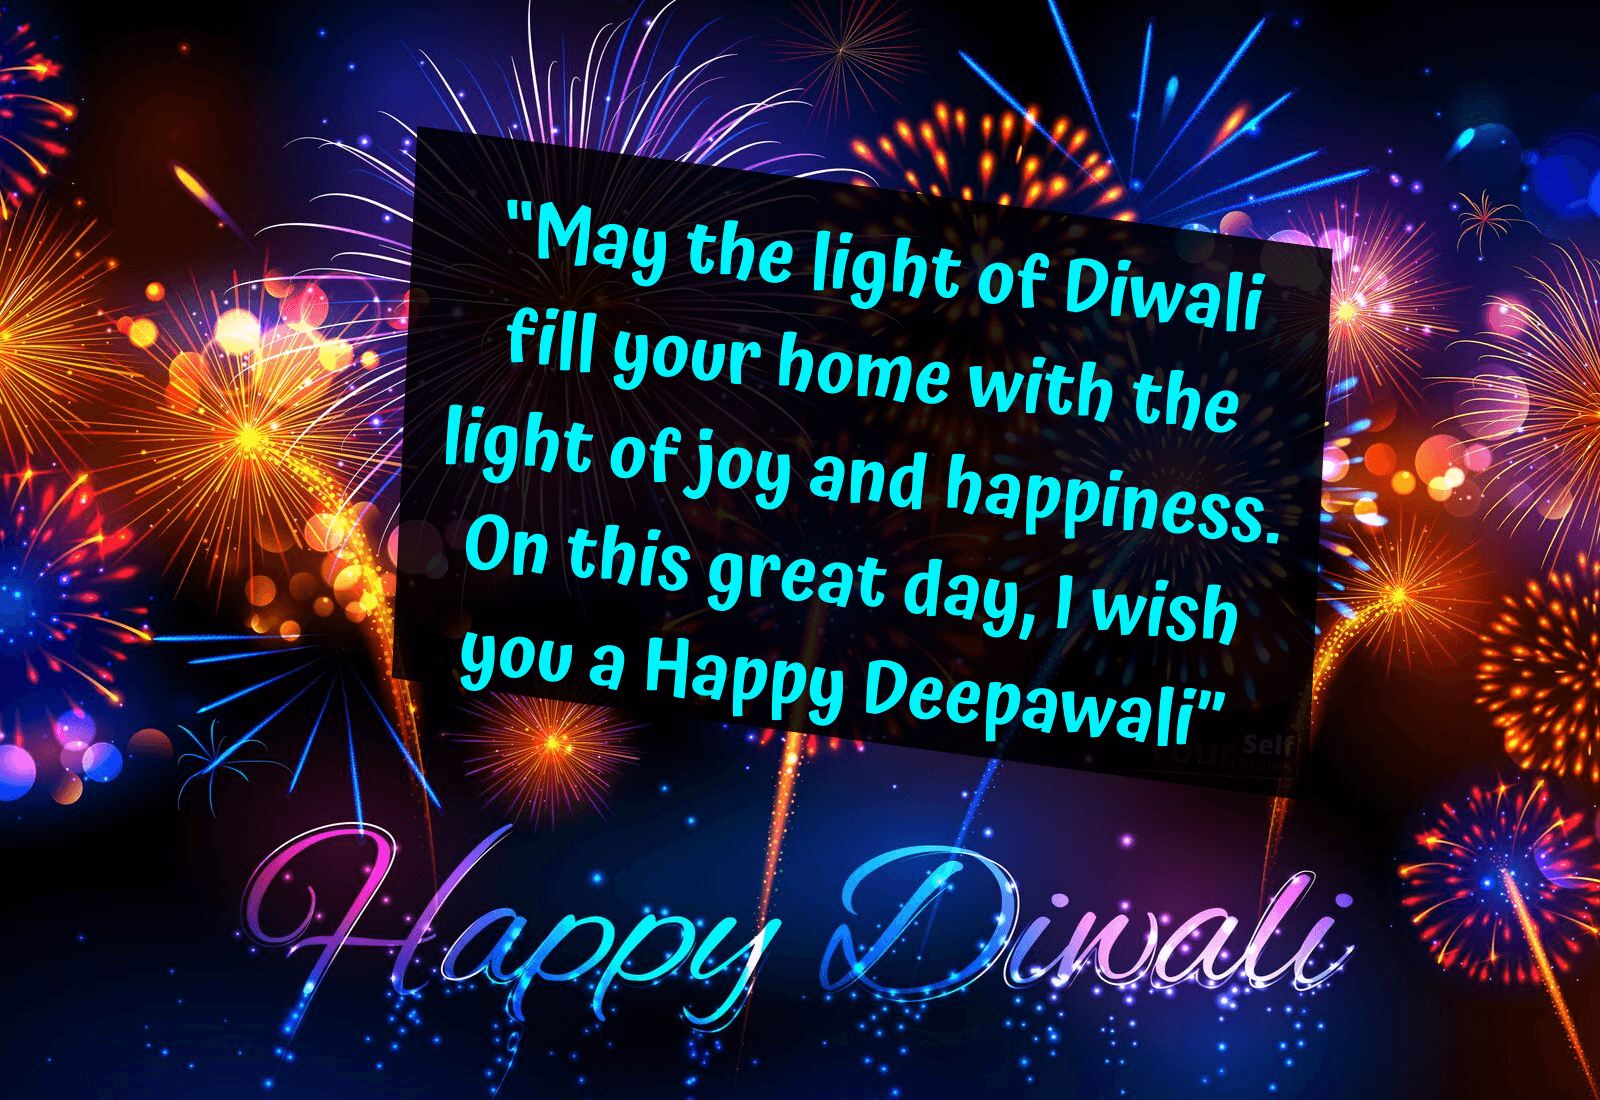 Best DiwaliWishes Images